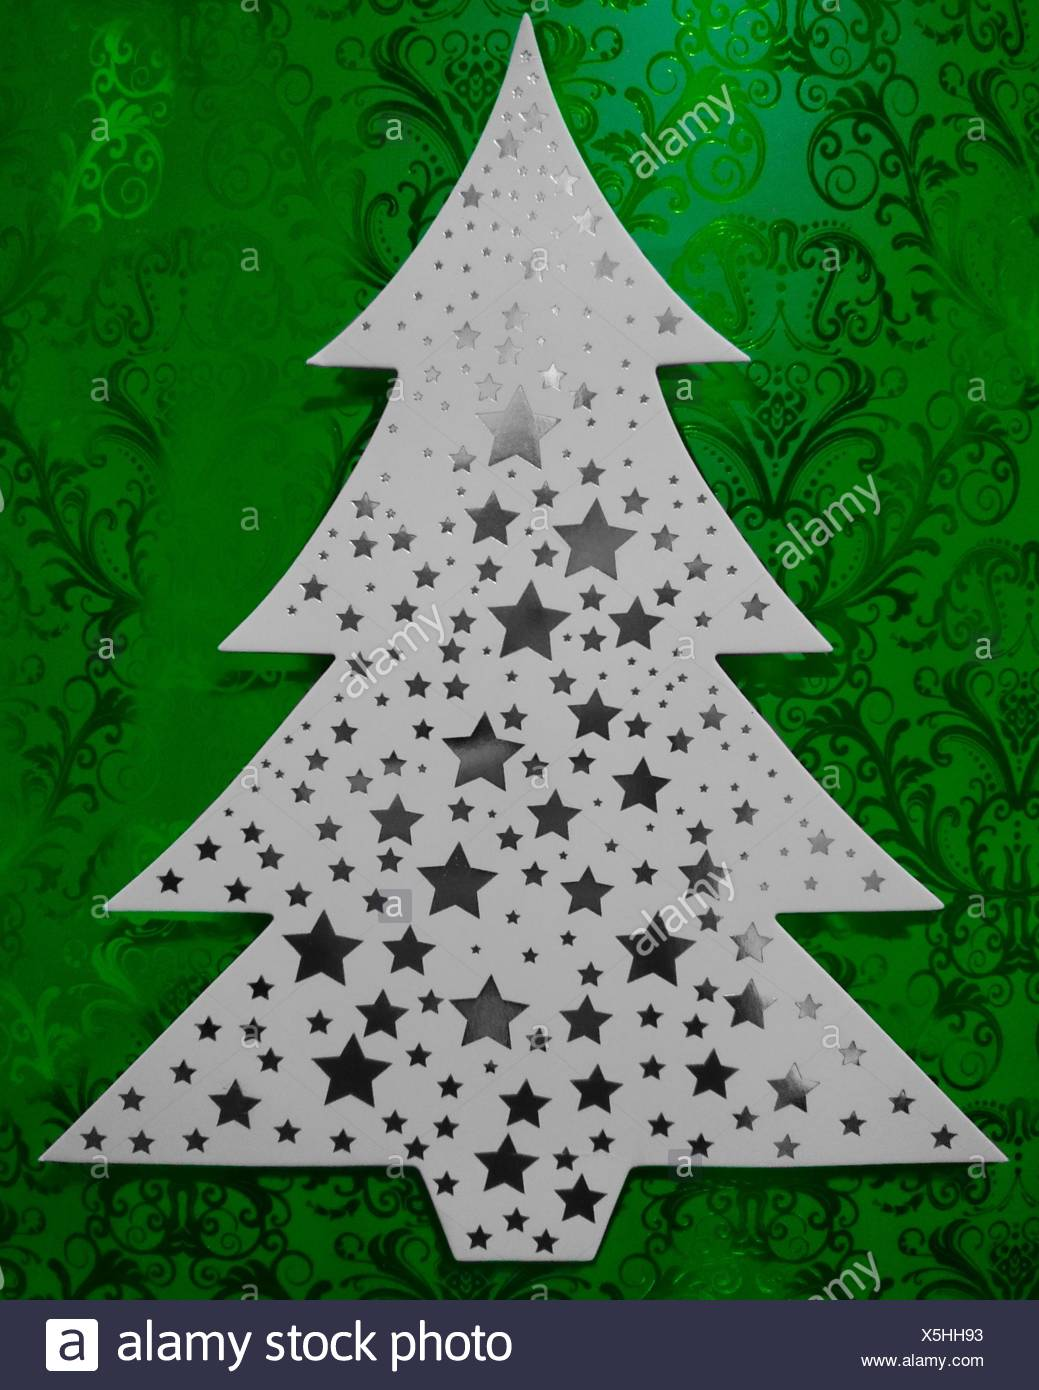 Artificial Christmas Tree Stock Photos & Artificial Christmas Tree ...